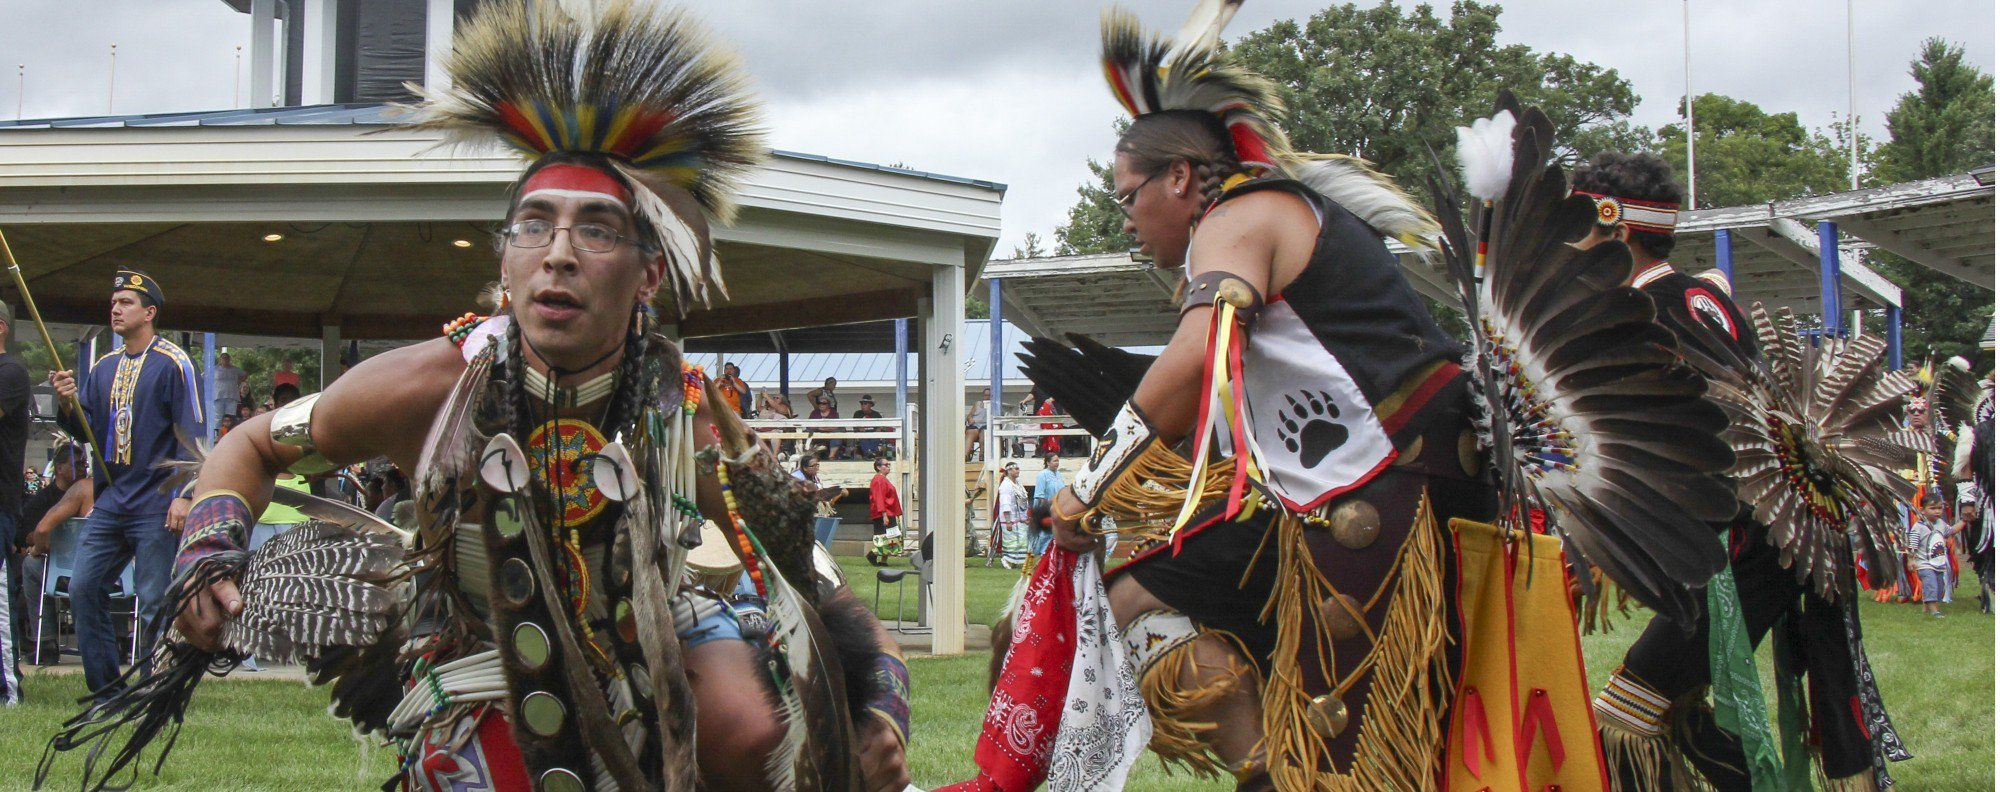 The Ho-Chunk tribe's ritual gathering is a deeply spiritual event in the heart of 'America's Dairyland' – and definitely not for the benefit of tourists